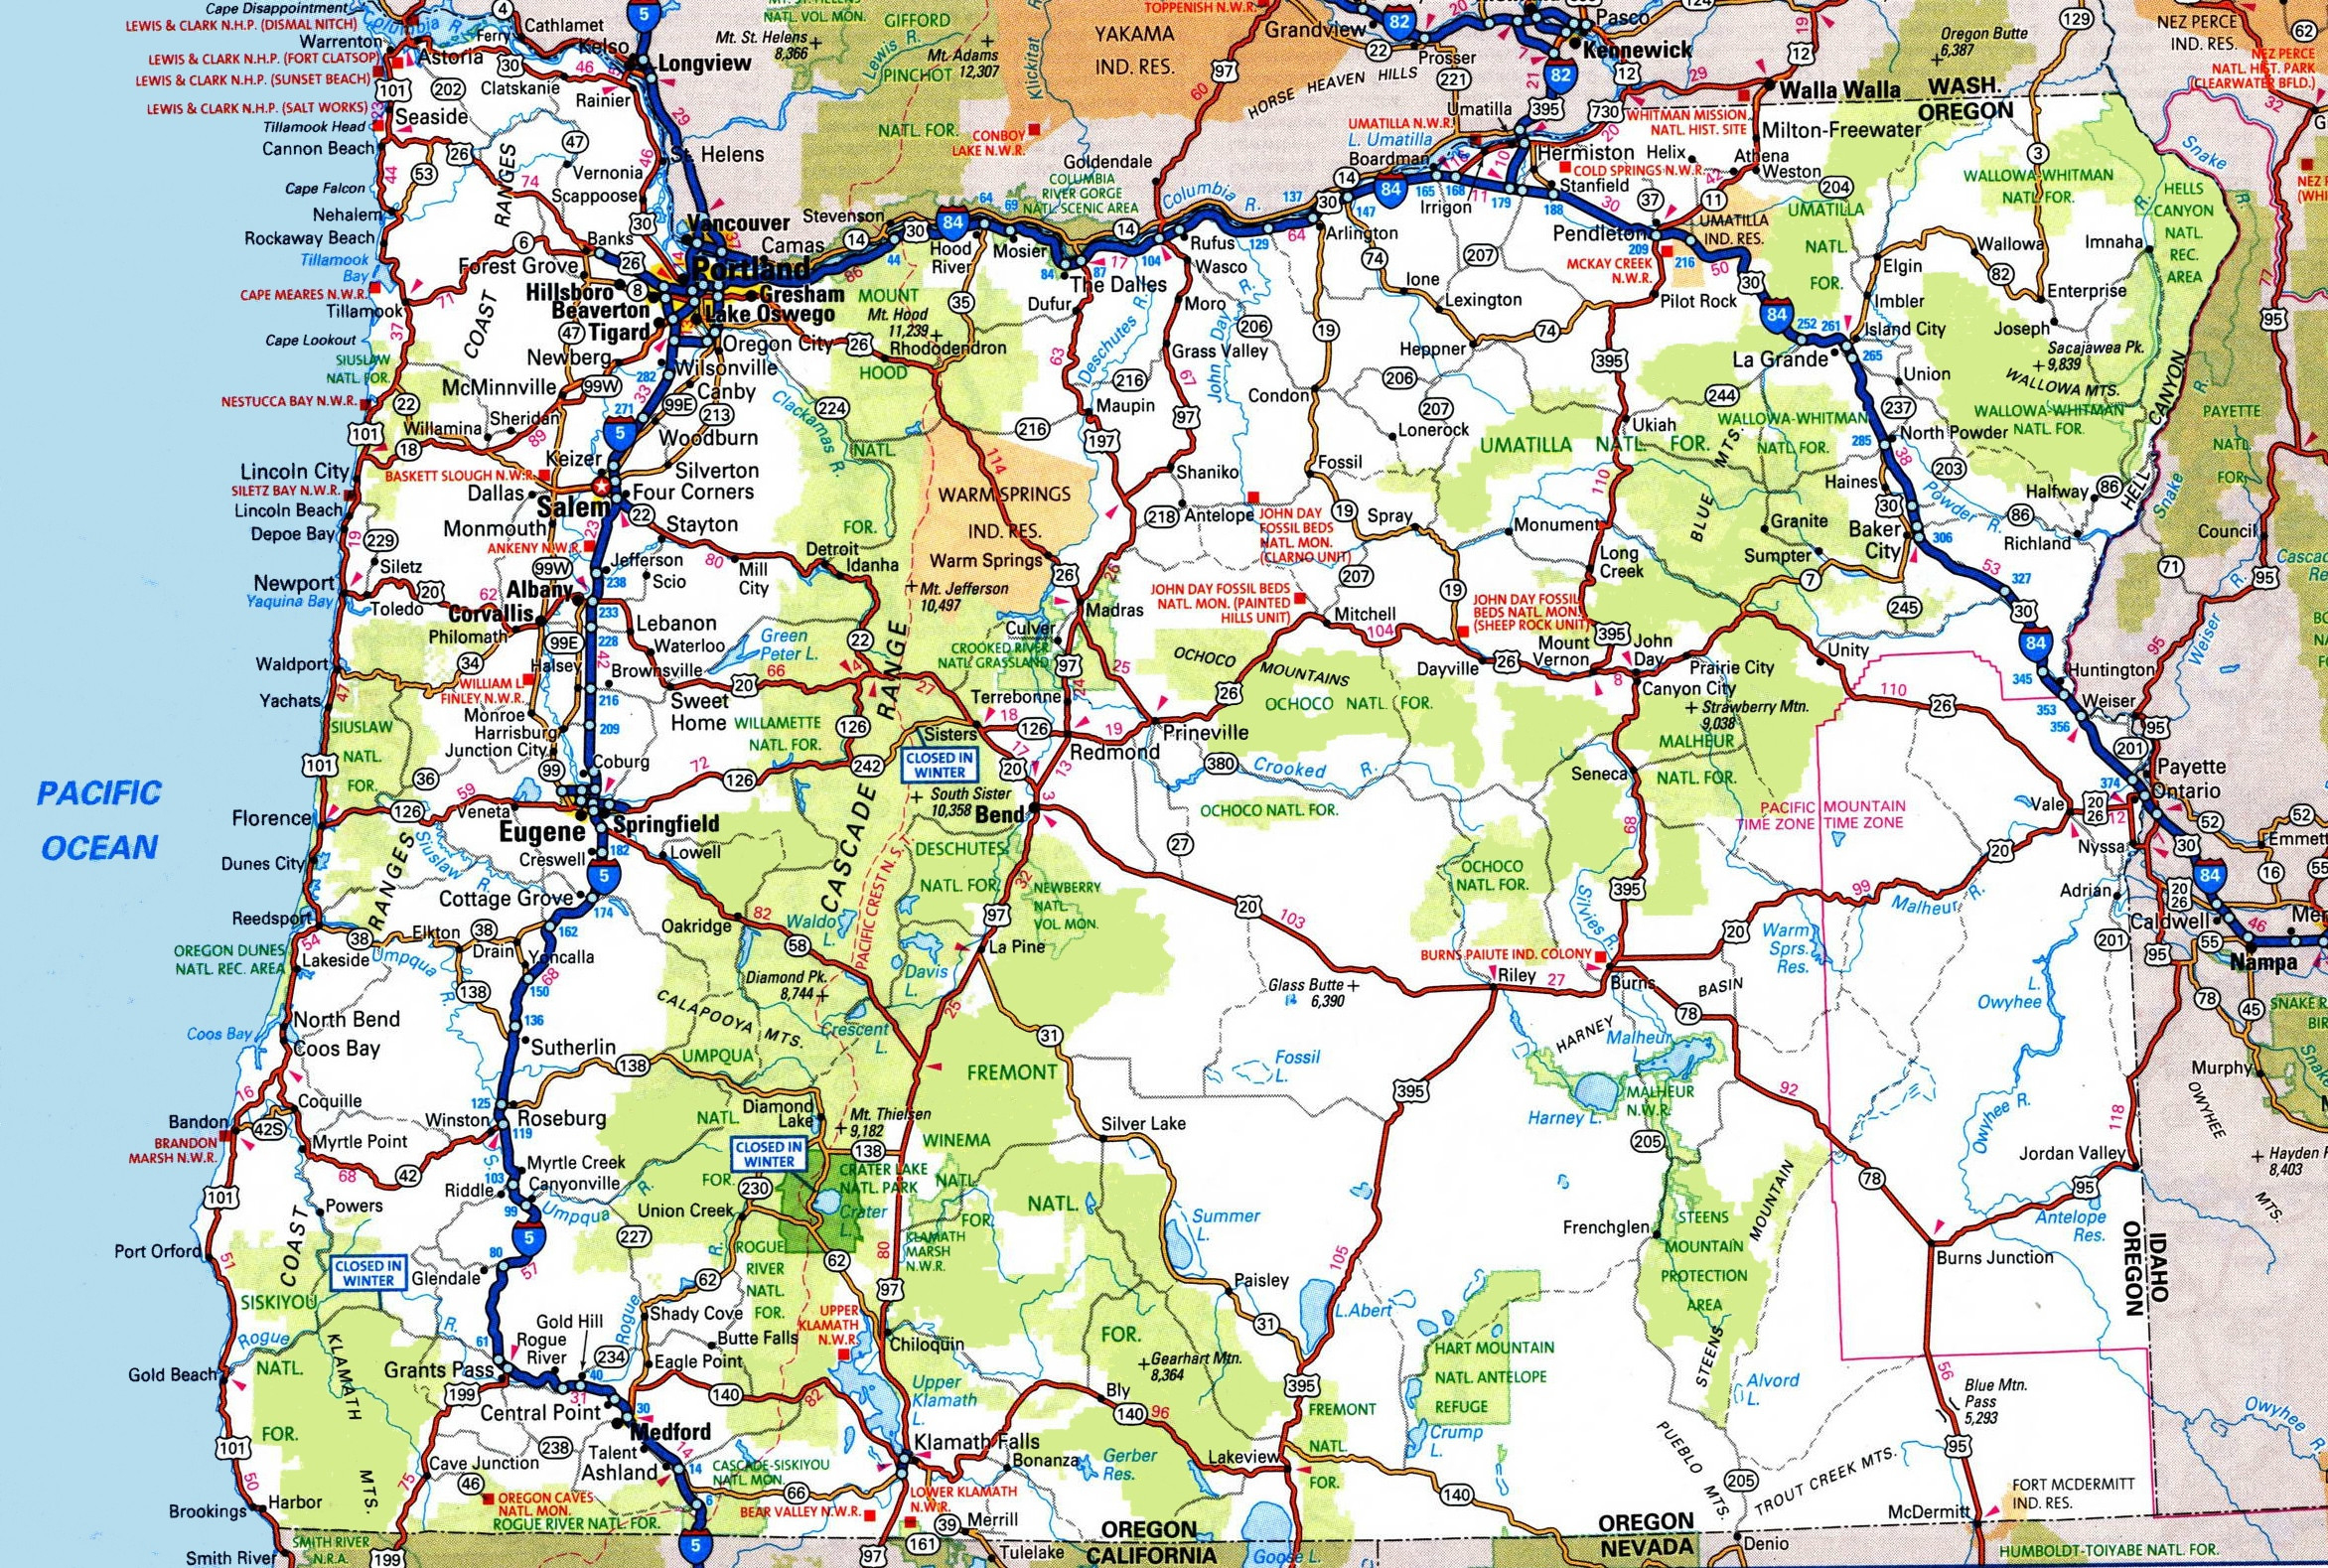 Road Map Of Southern Oregon And Northern California Valid Oregon - Road Map Oregon California